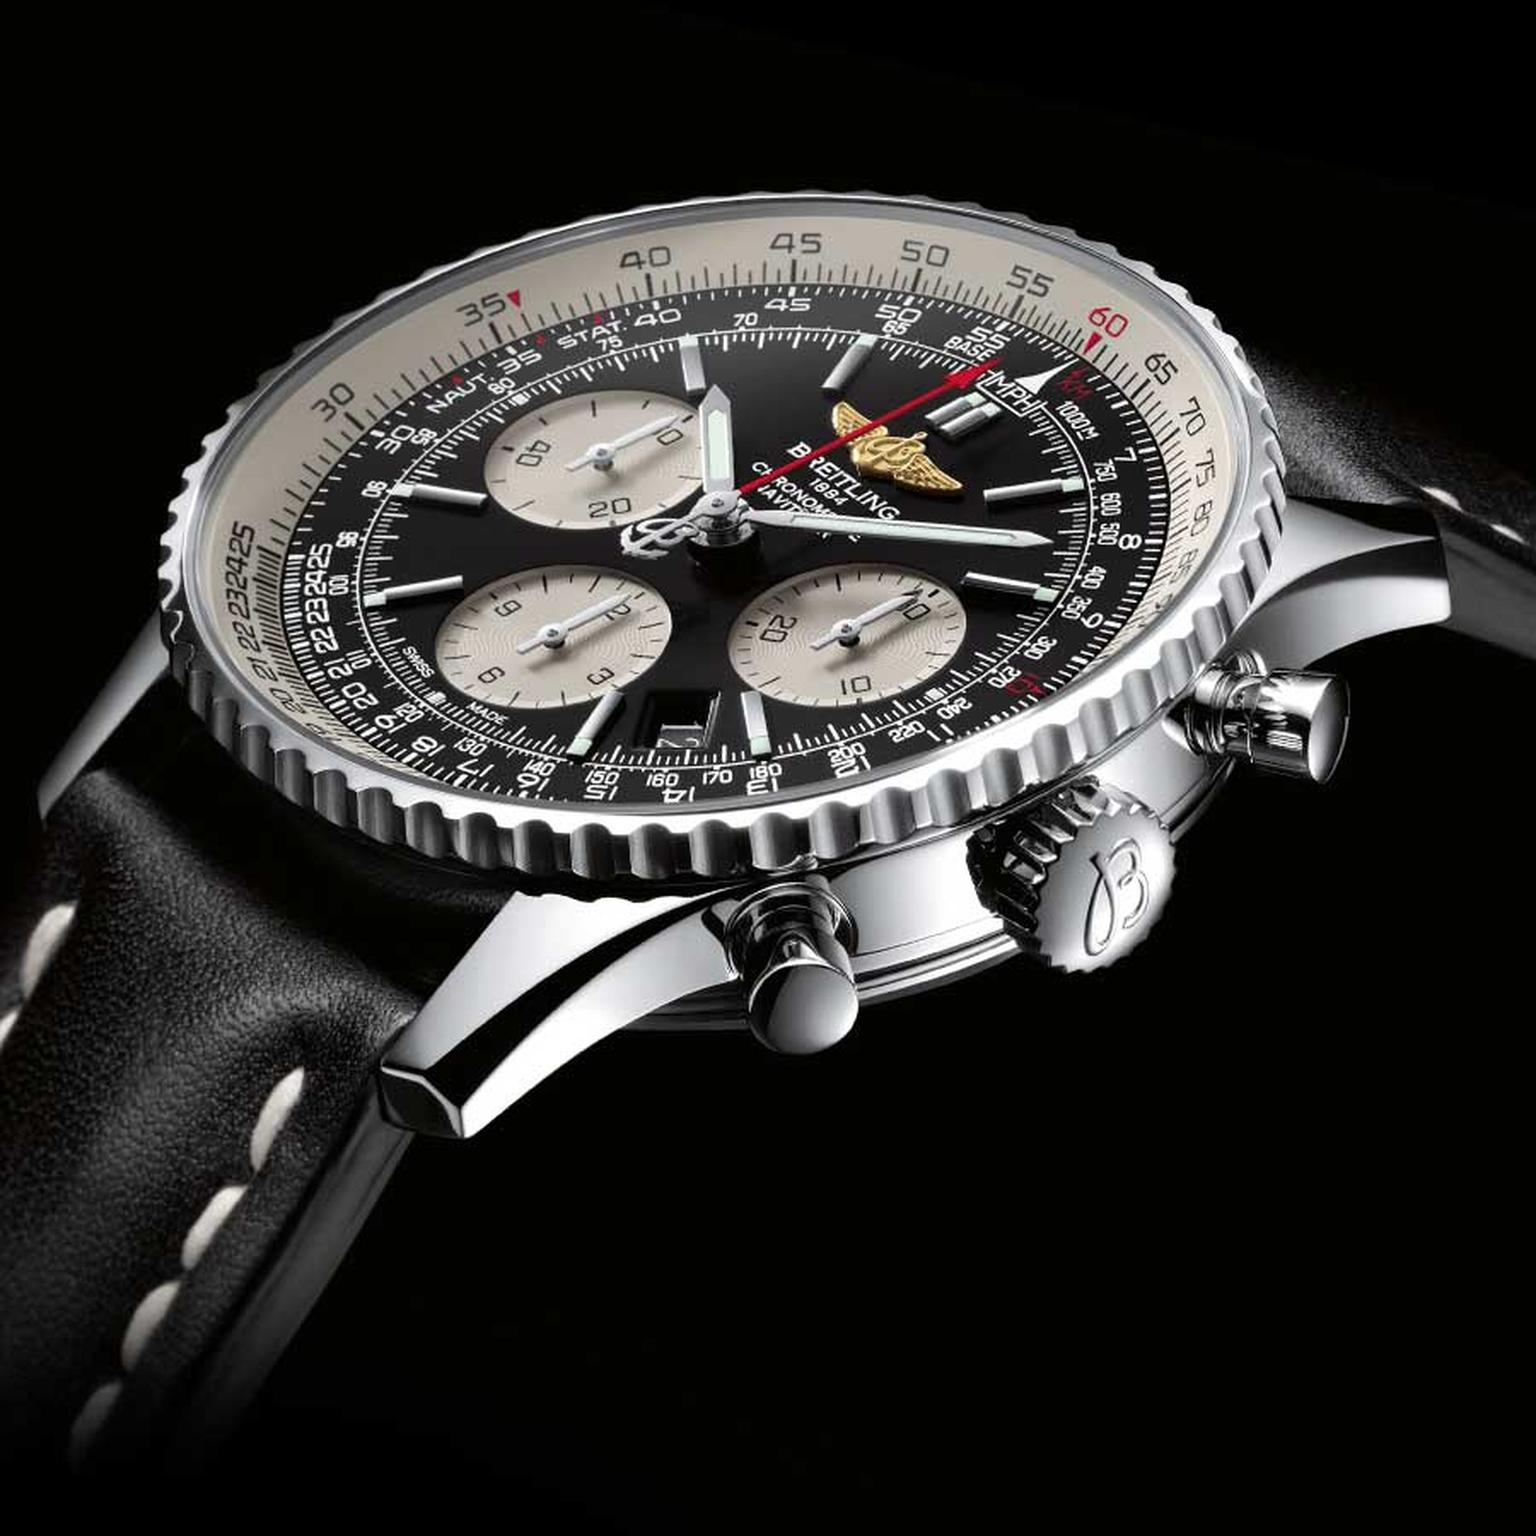 Breitling Navitimer 01 43mm watch